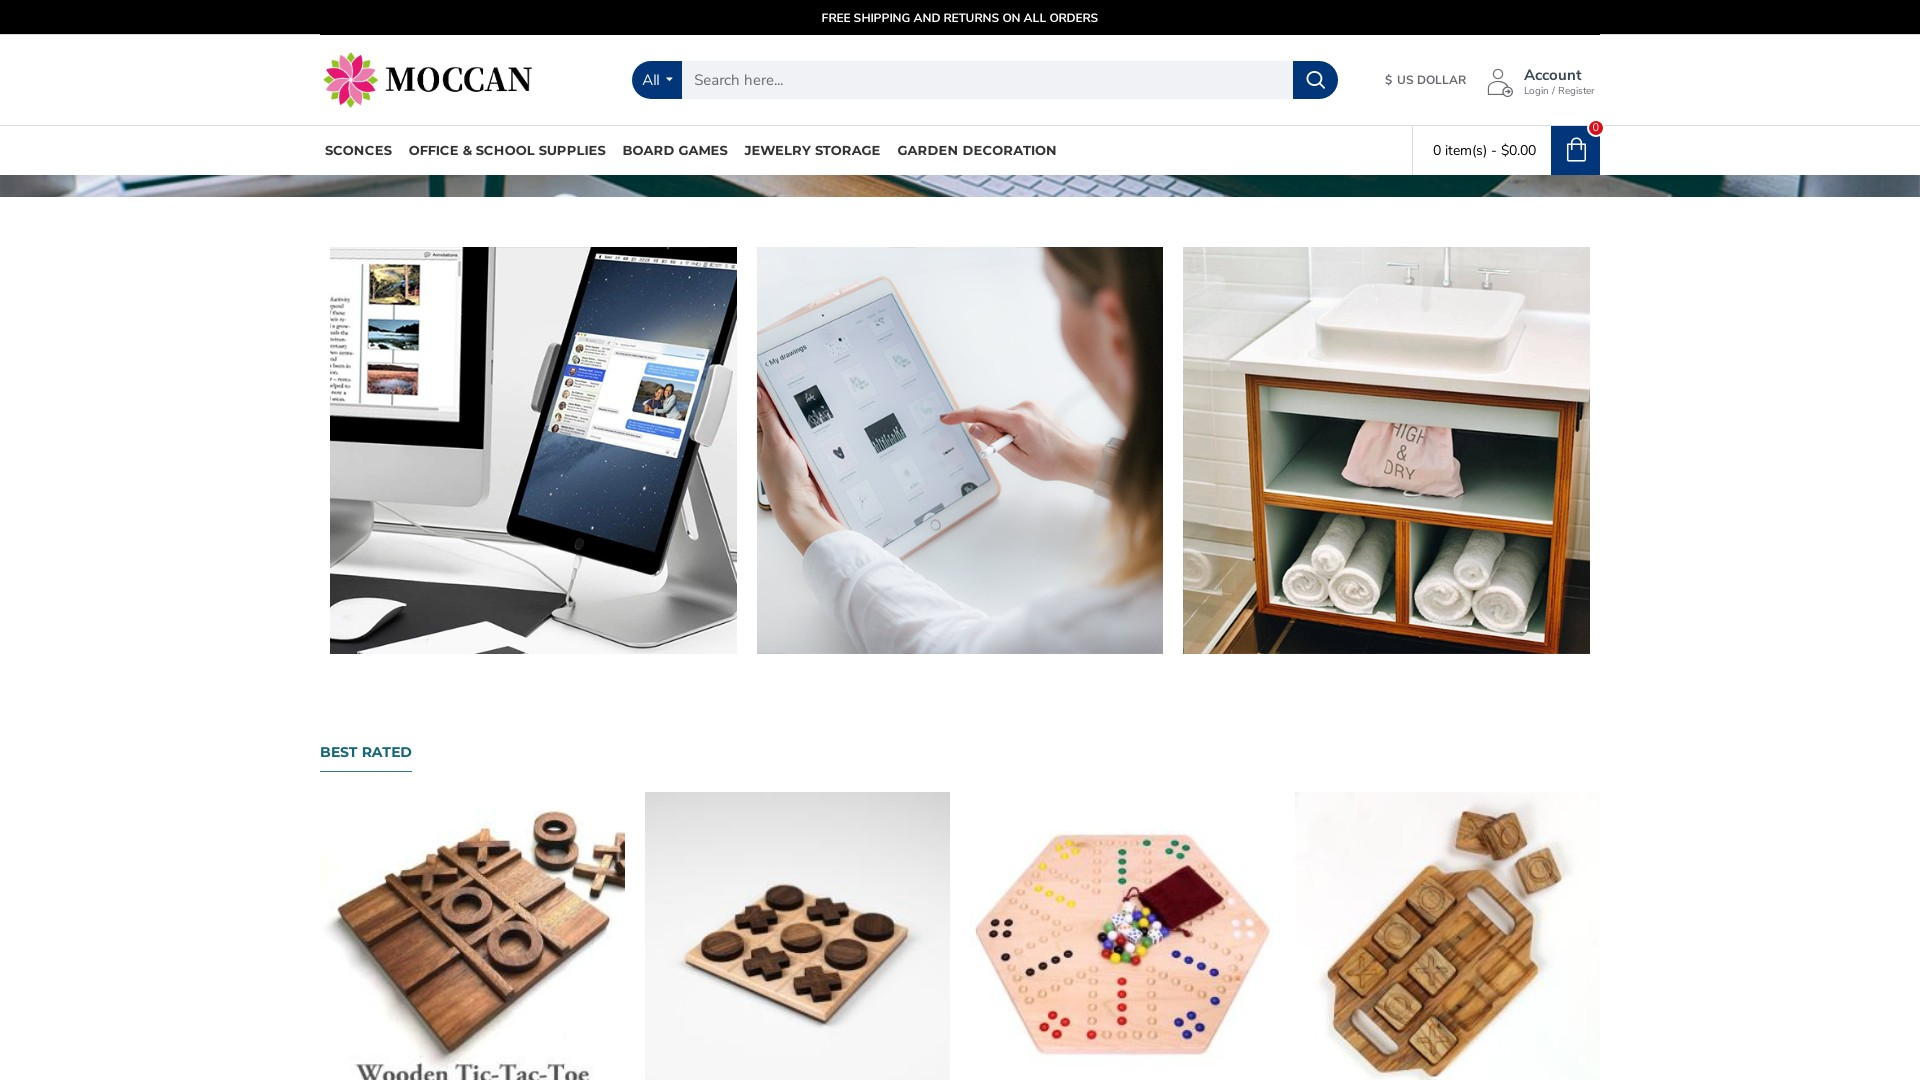 Is Moccan a Scam? See the Review of the Online Store